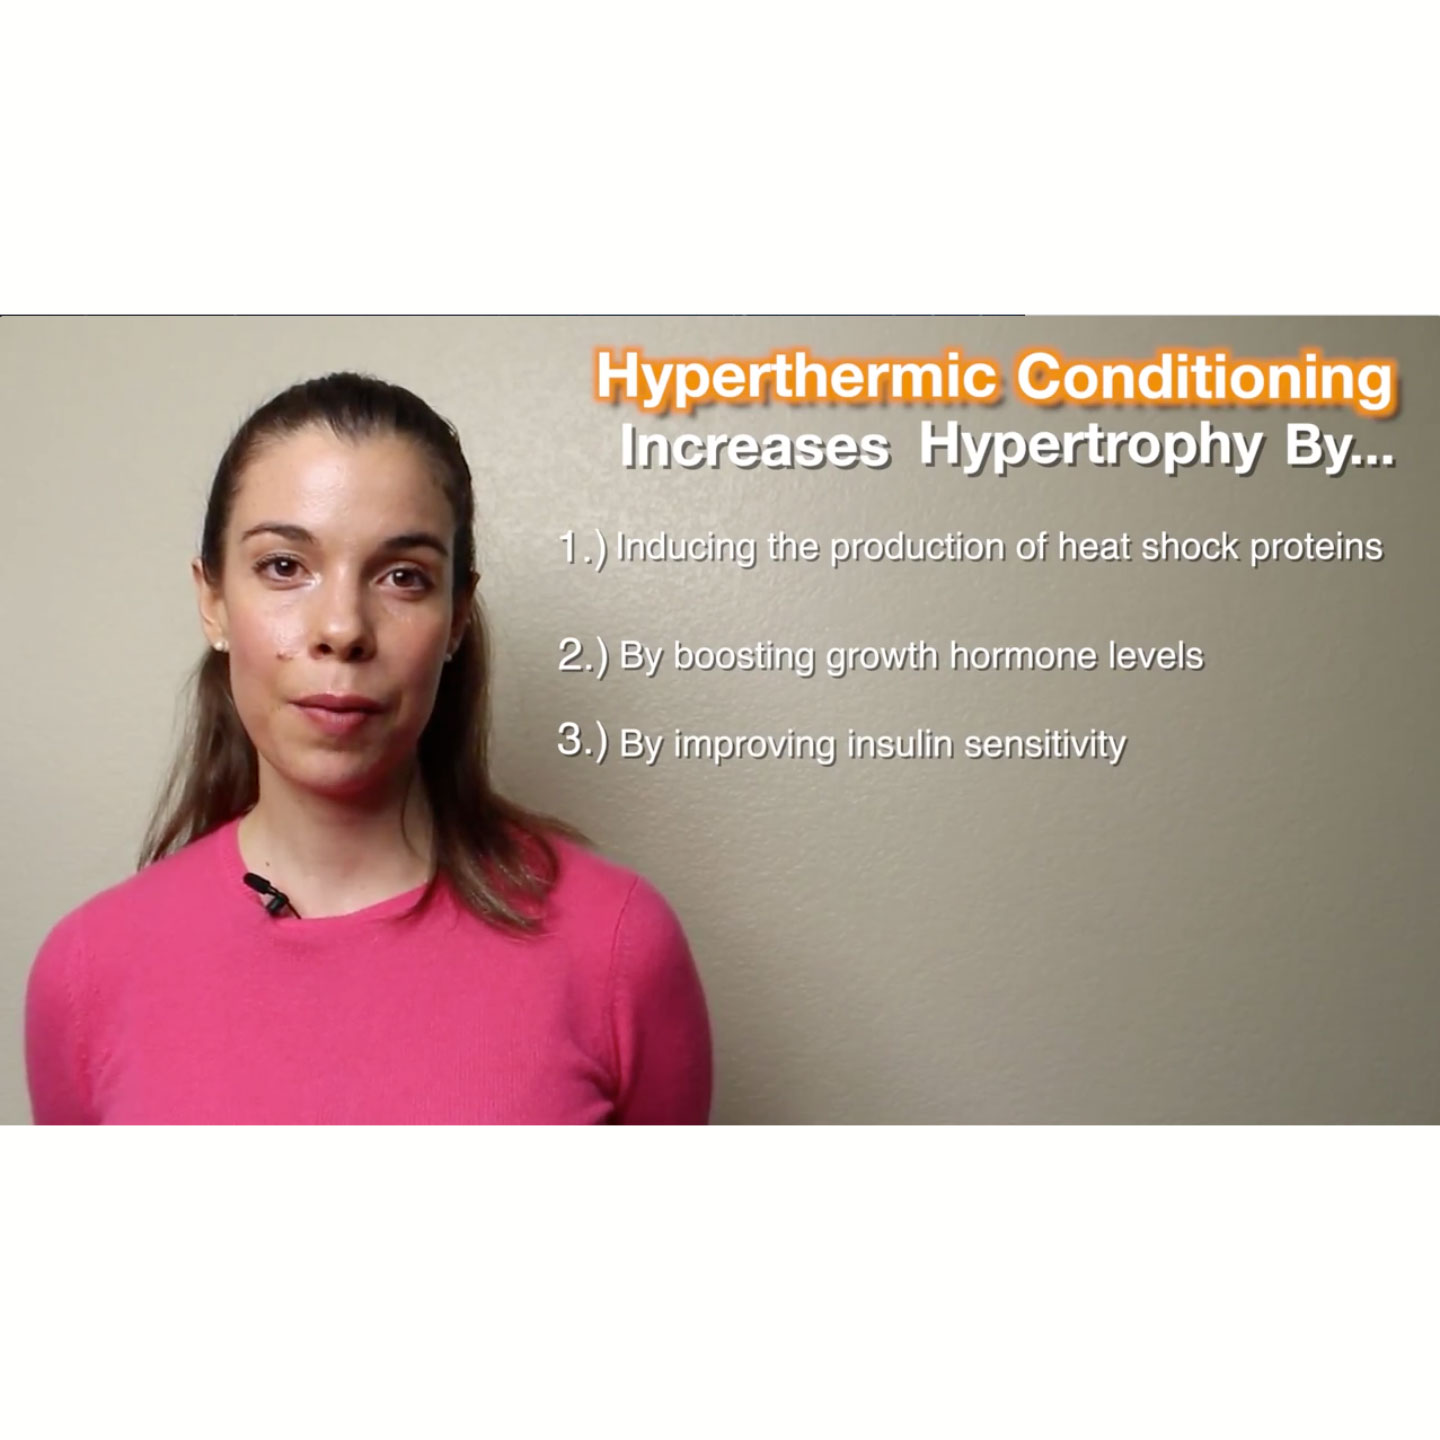 Hyperthermic Conditioning for Hypertrophy, Endurance, and Neurogenesis